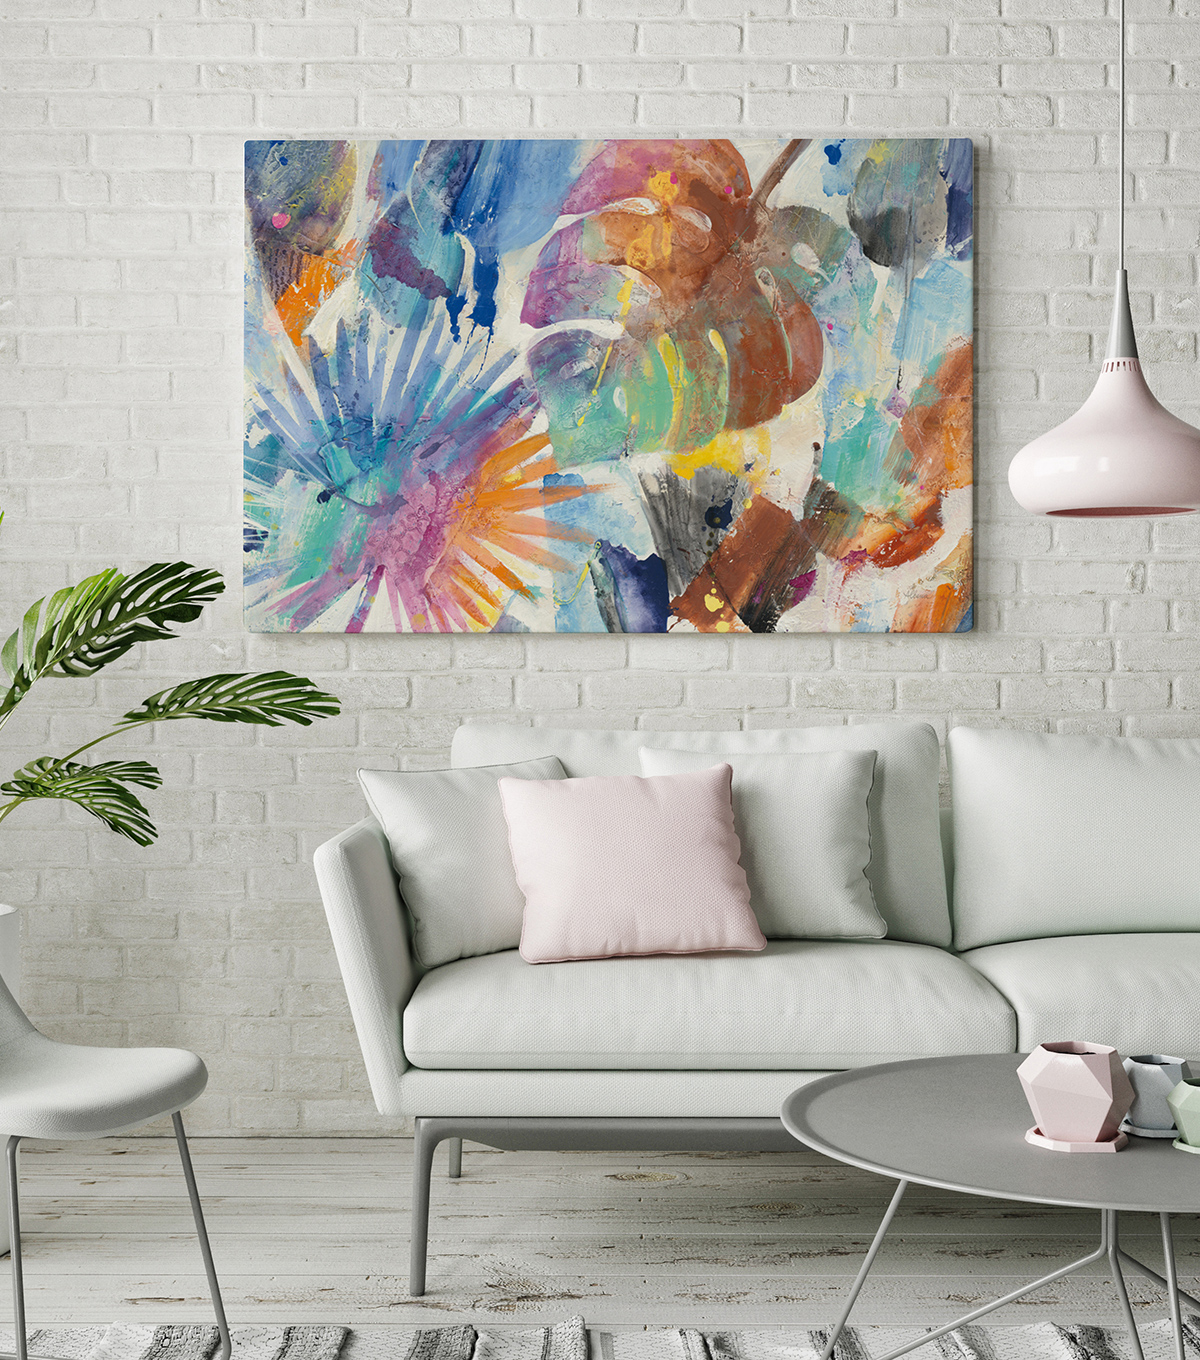 Colorful Art for the Home